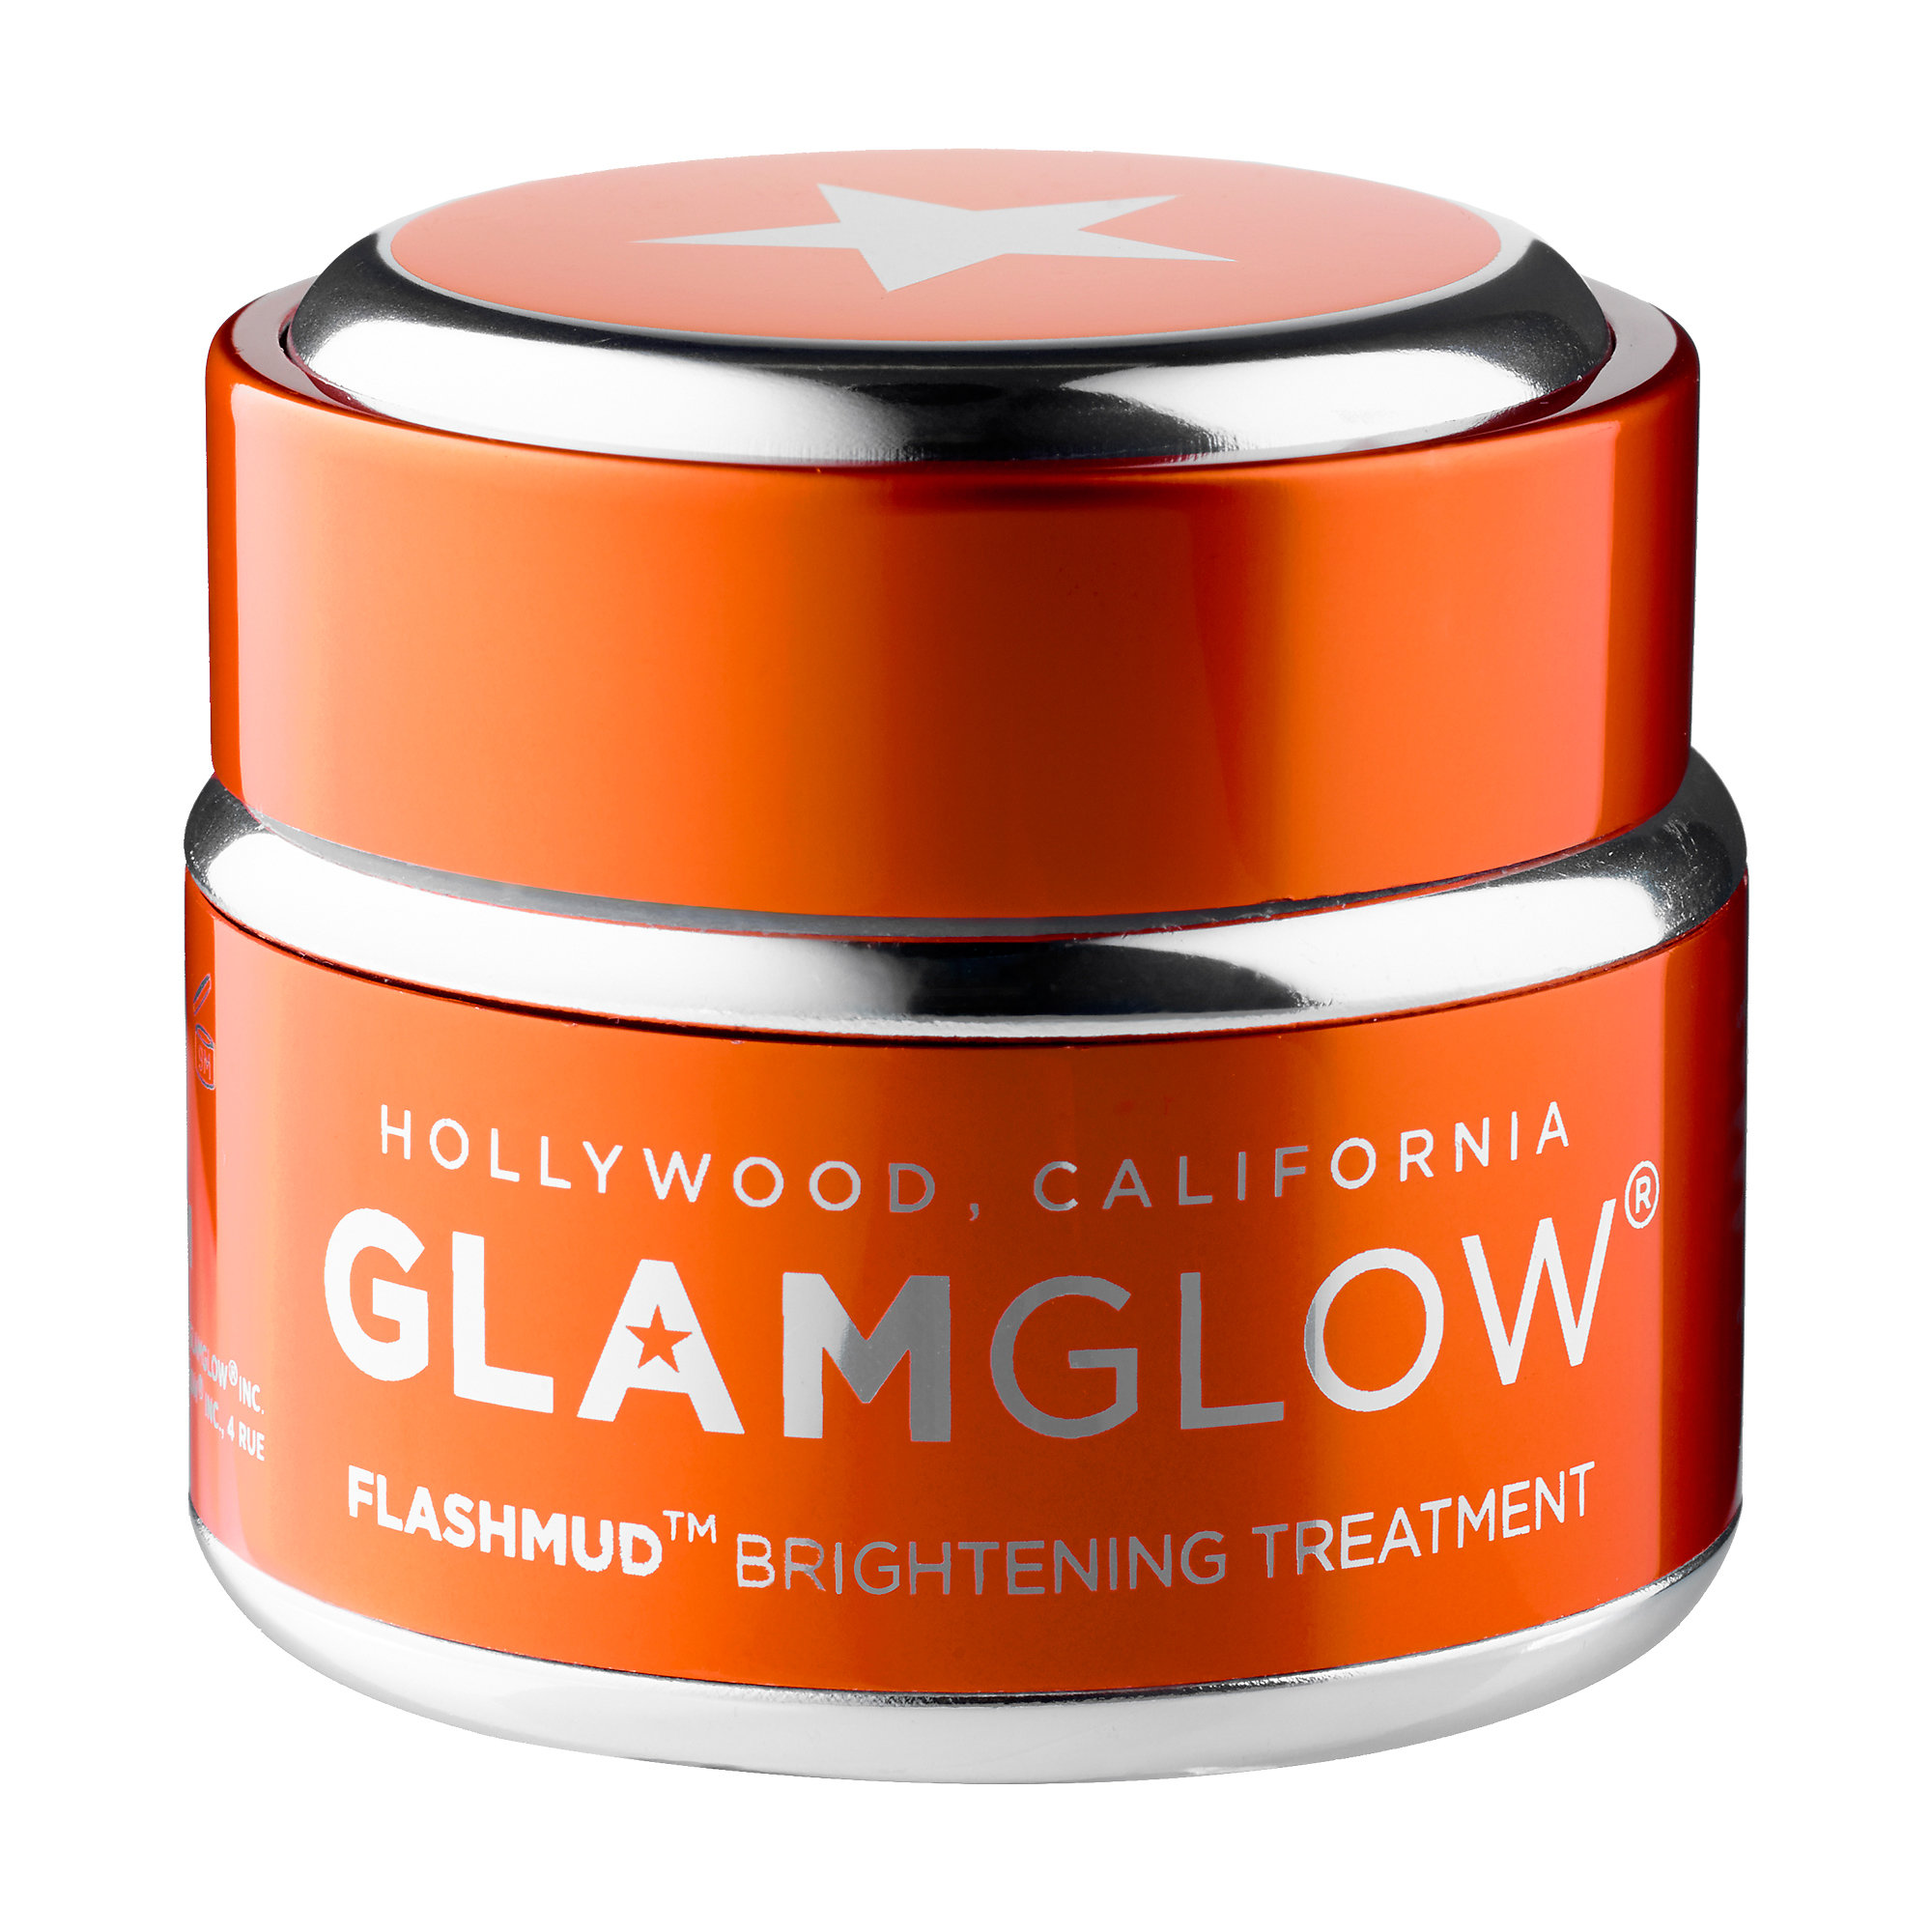 Glamglow Flashmud Brightening Treatment.jpg